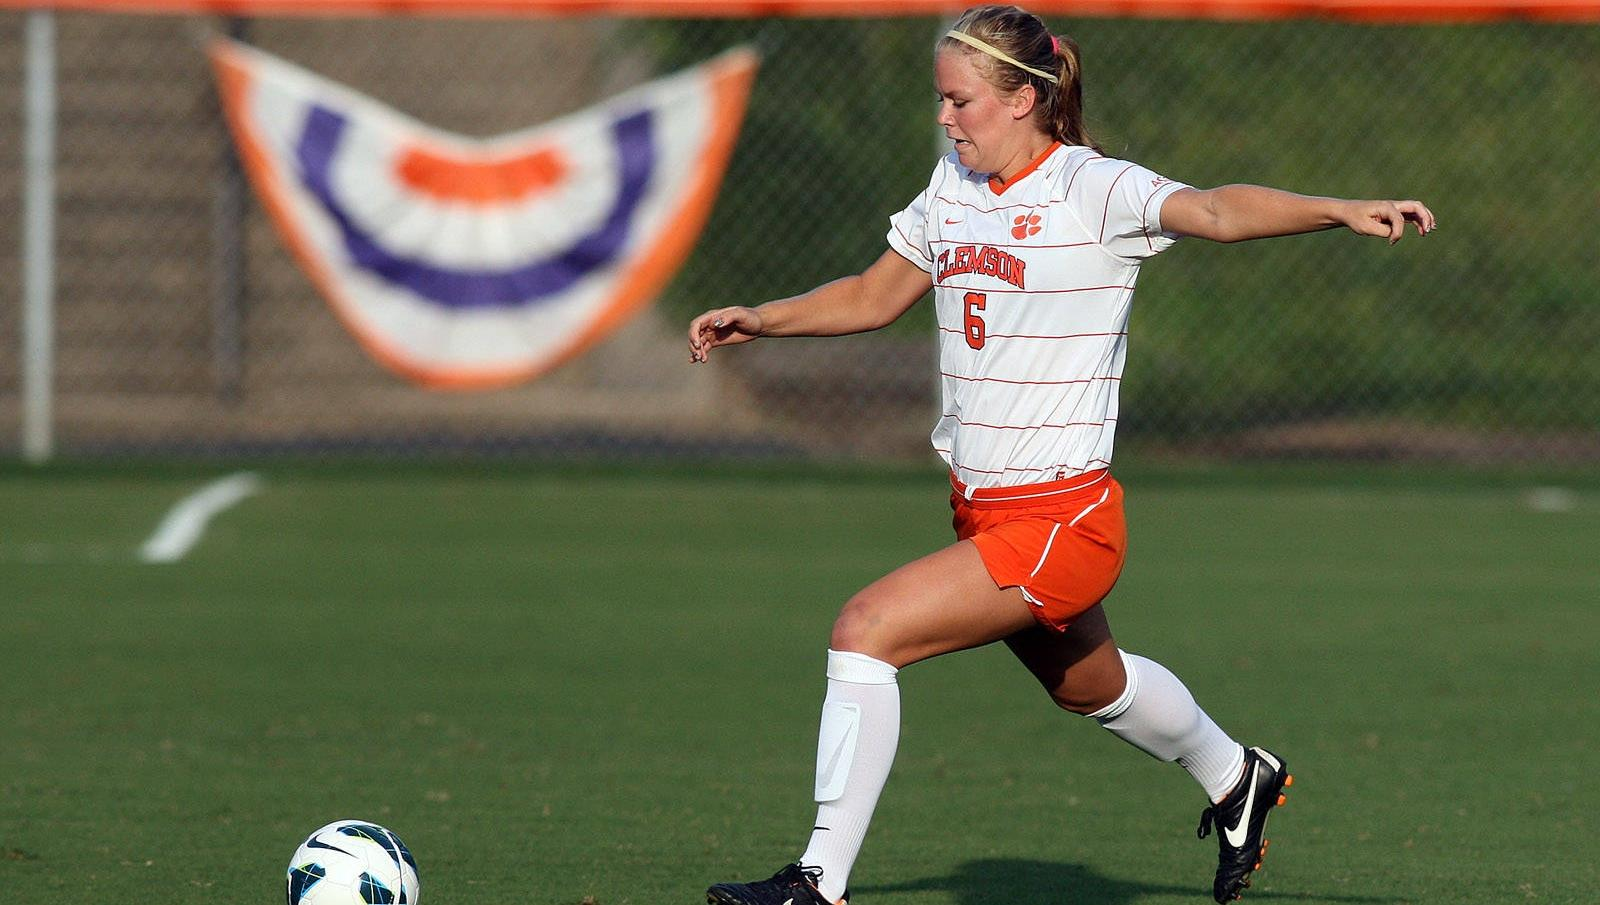 Tigers Fall to Maryland 4-1 in College Park Sunday Afternoon